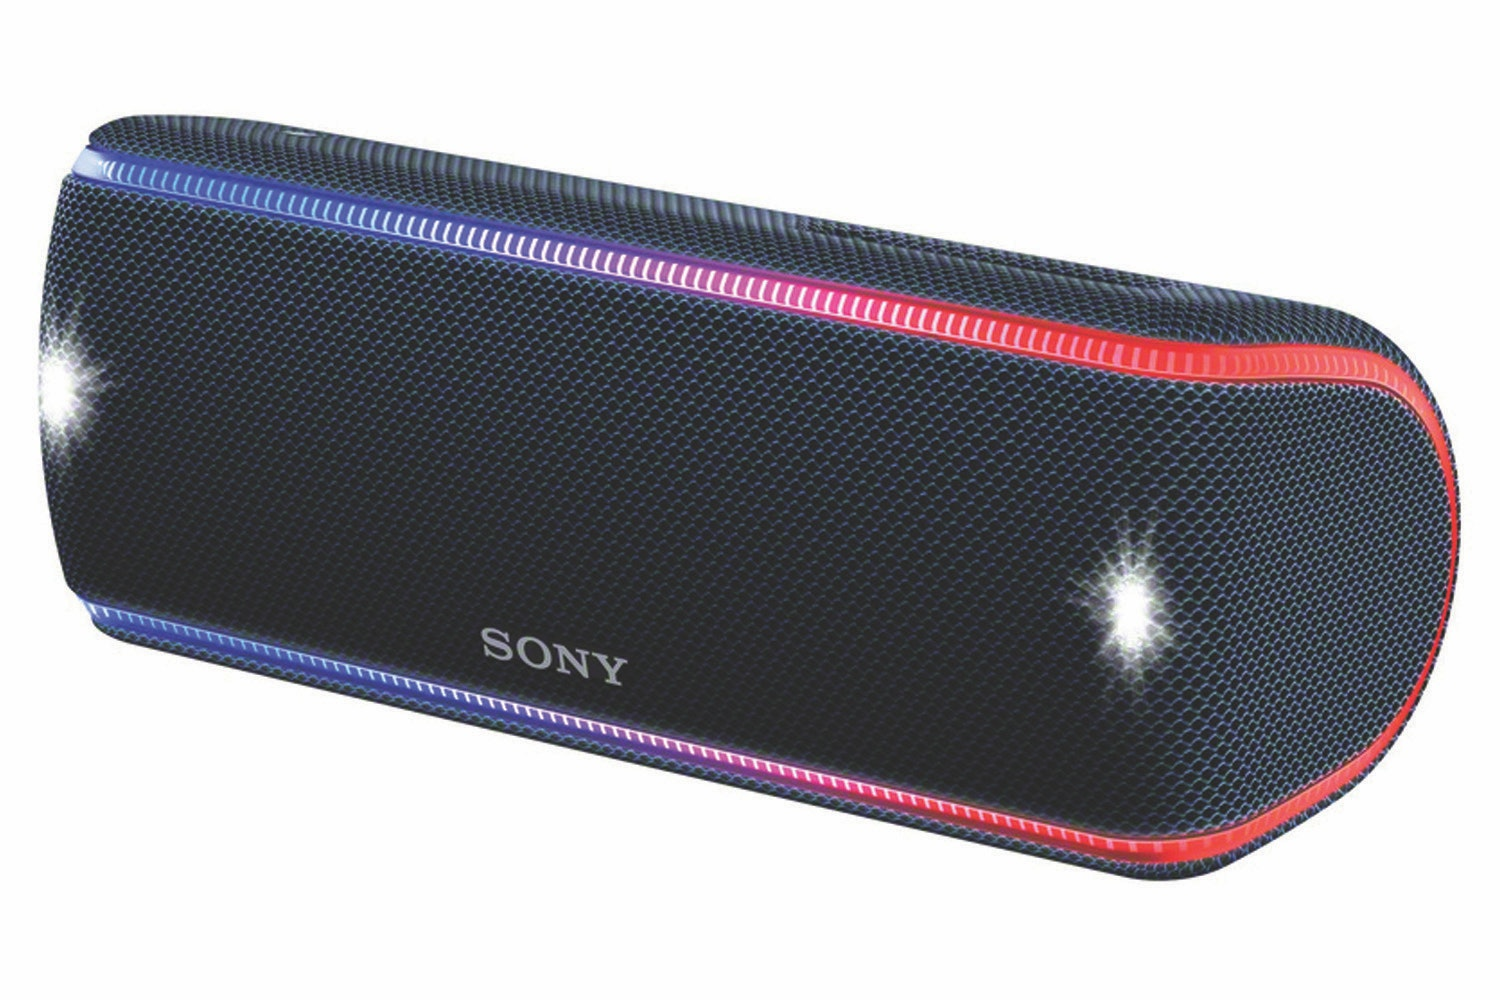 Sony SRSXB31B.CE7 Portable Waterproof Speaker with EXTRA BASS, 24 Hours Battery Life and Lighting Effects